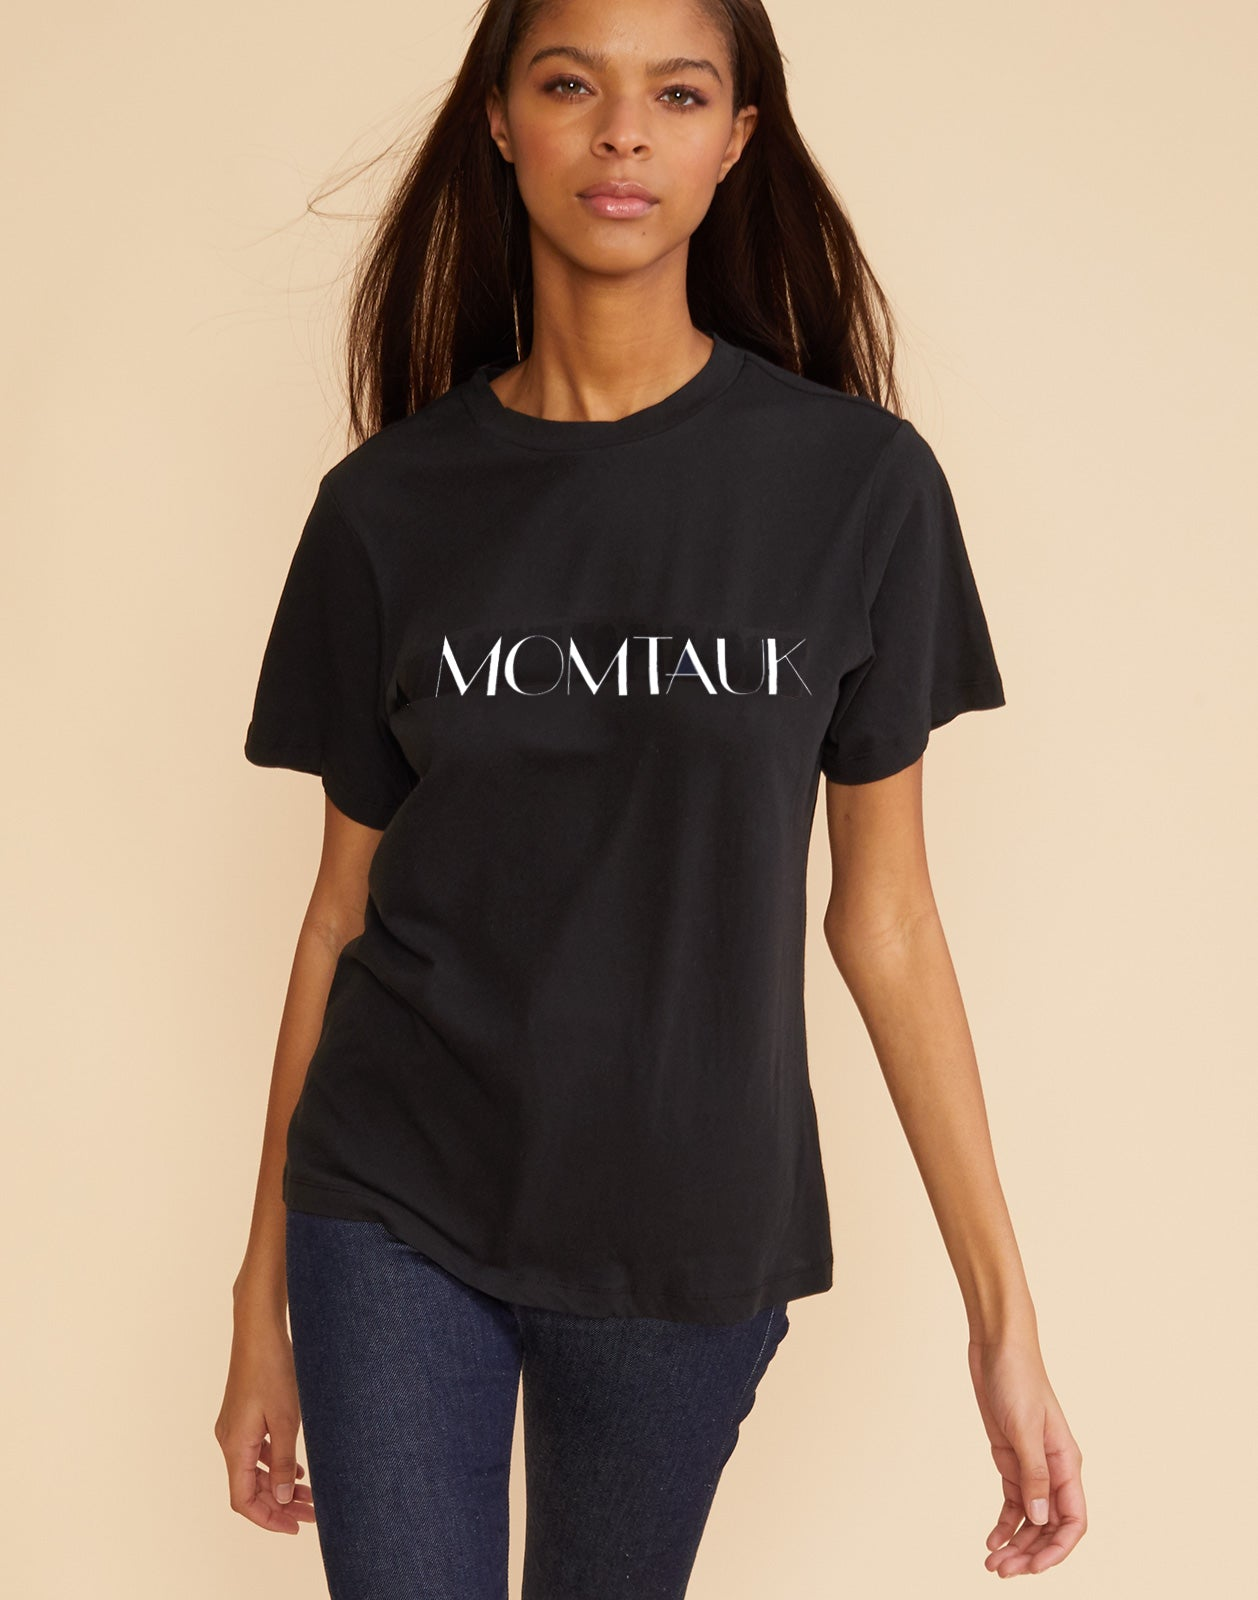 Close view of model wearing a black t-shirt with 'momtauk' printed across the front